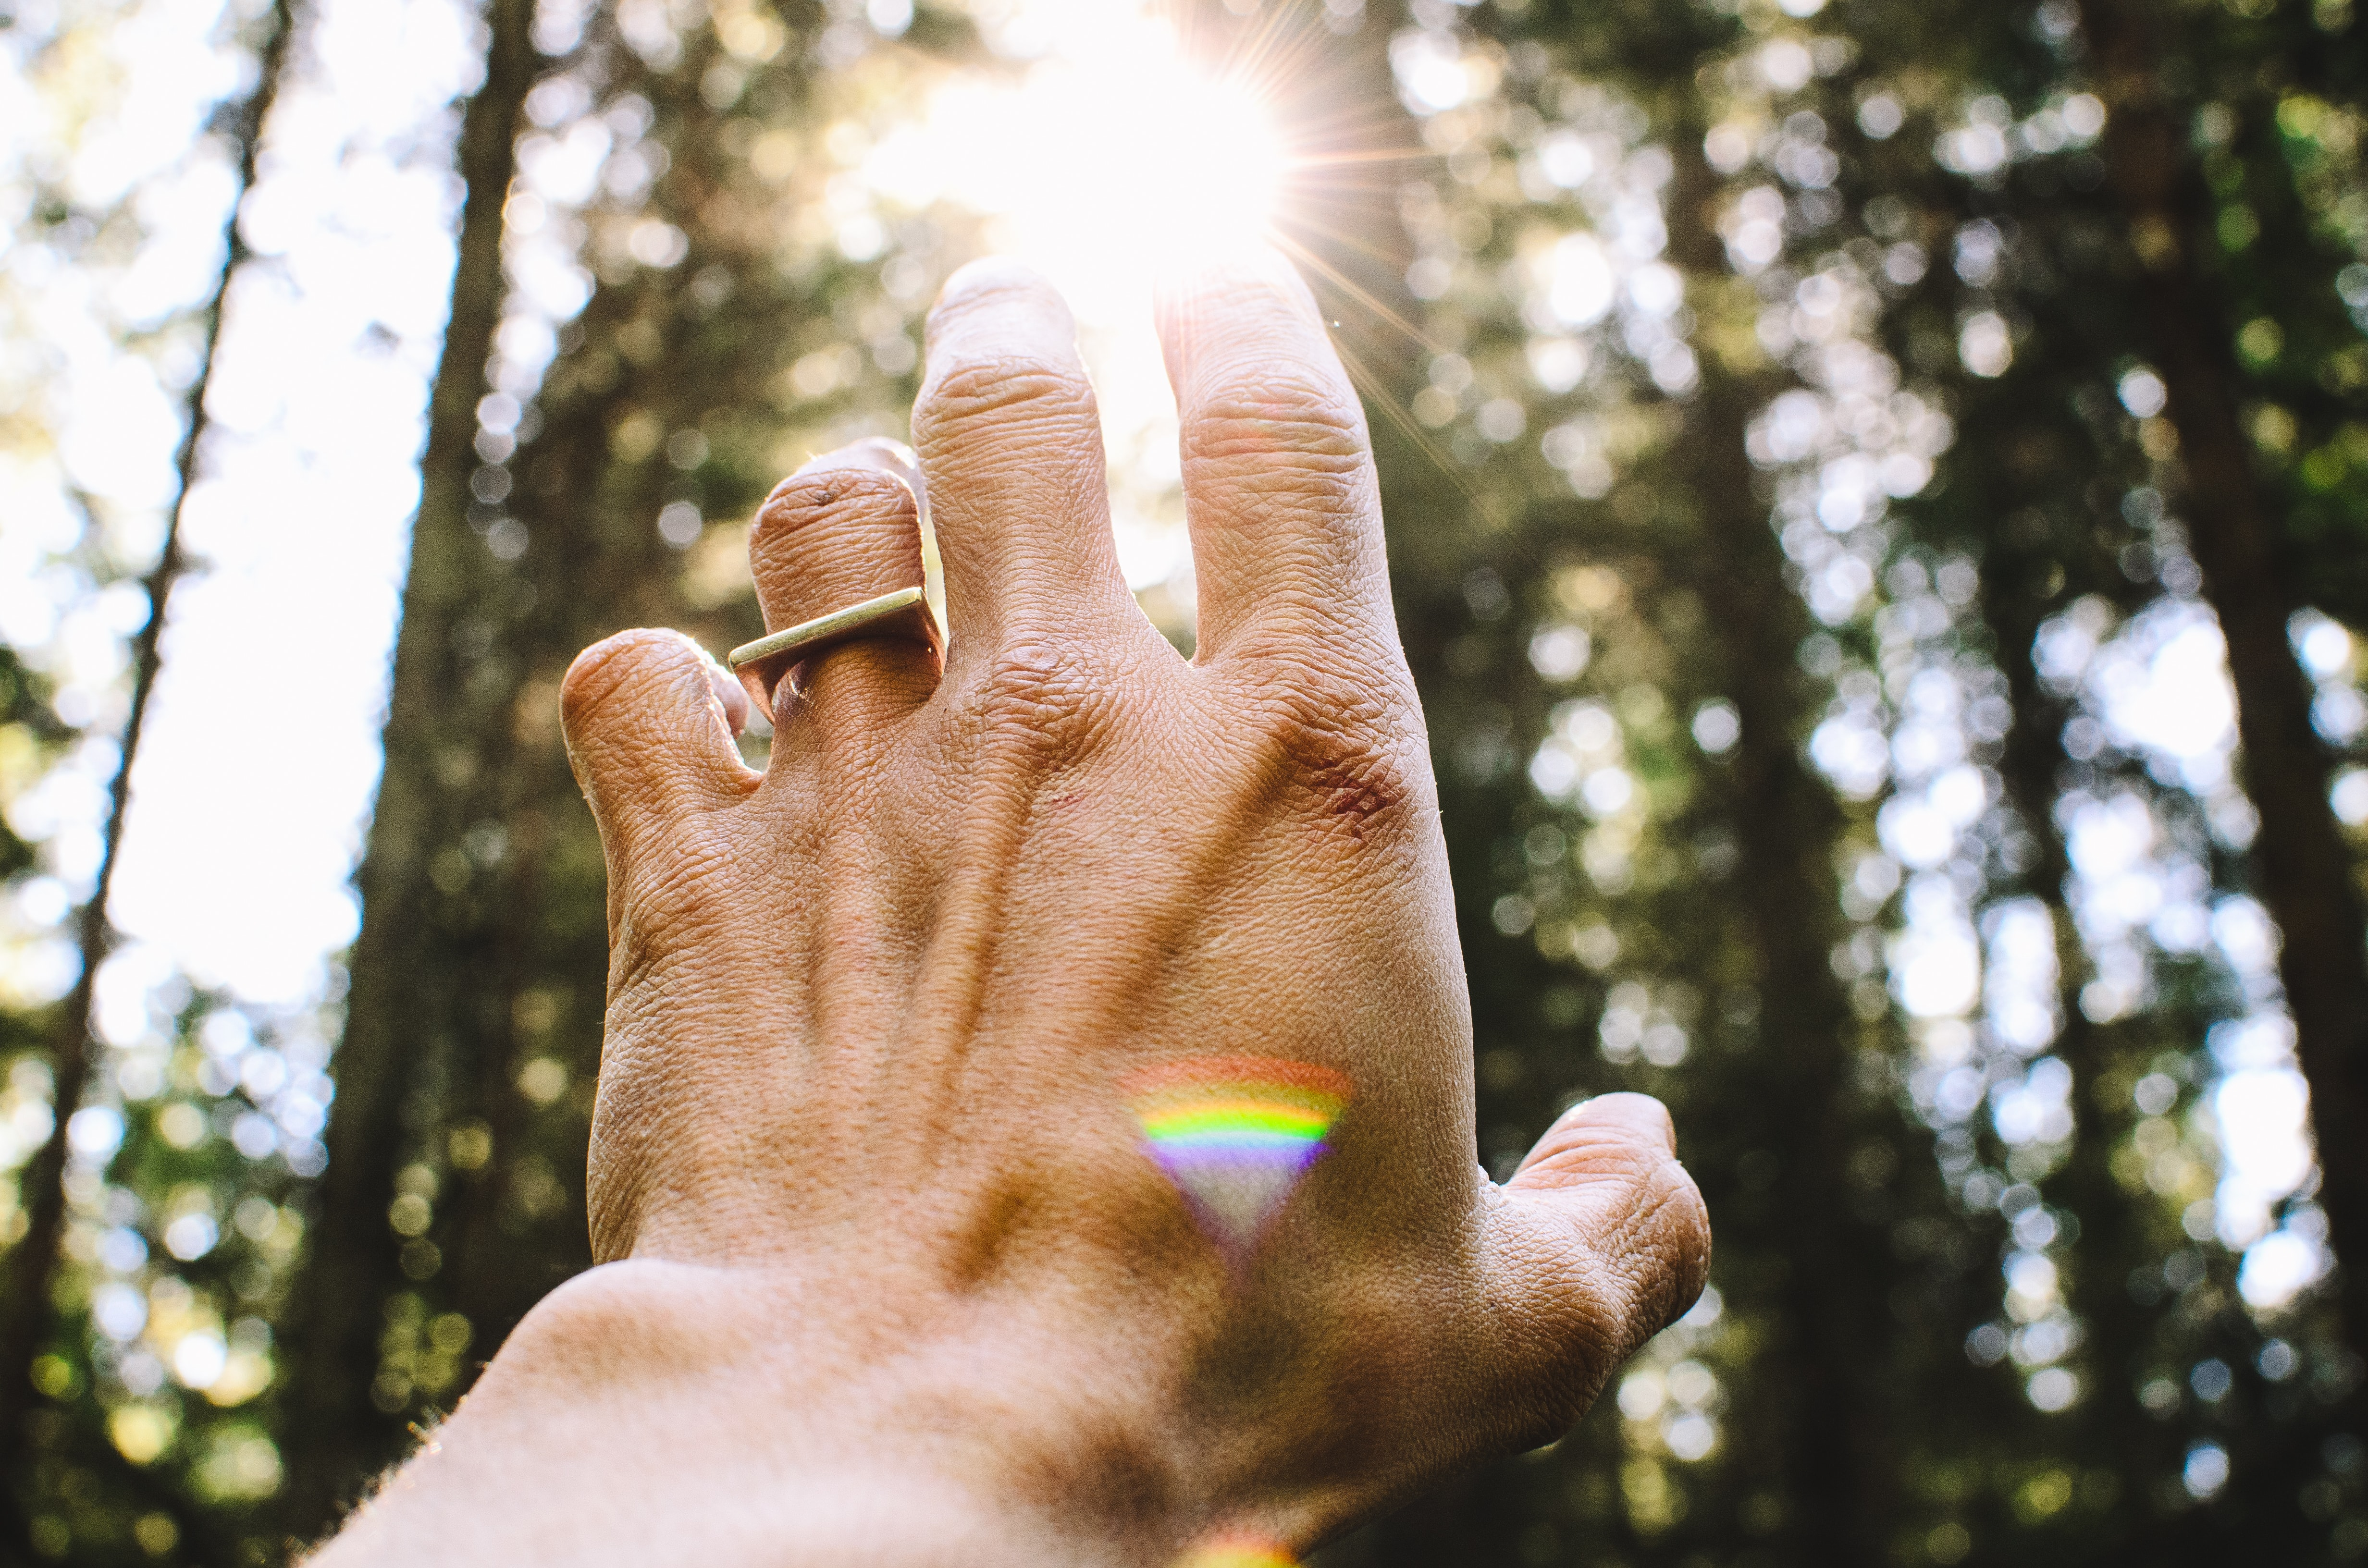 A hand with rings on it reaching out towards the trees